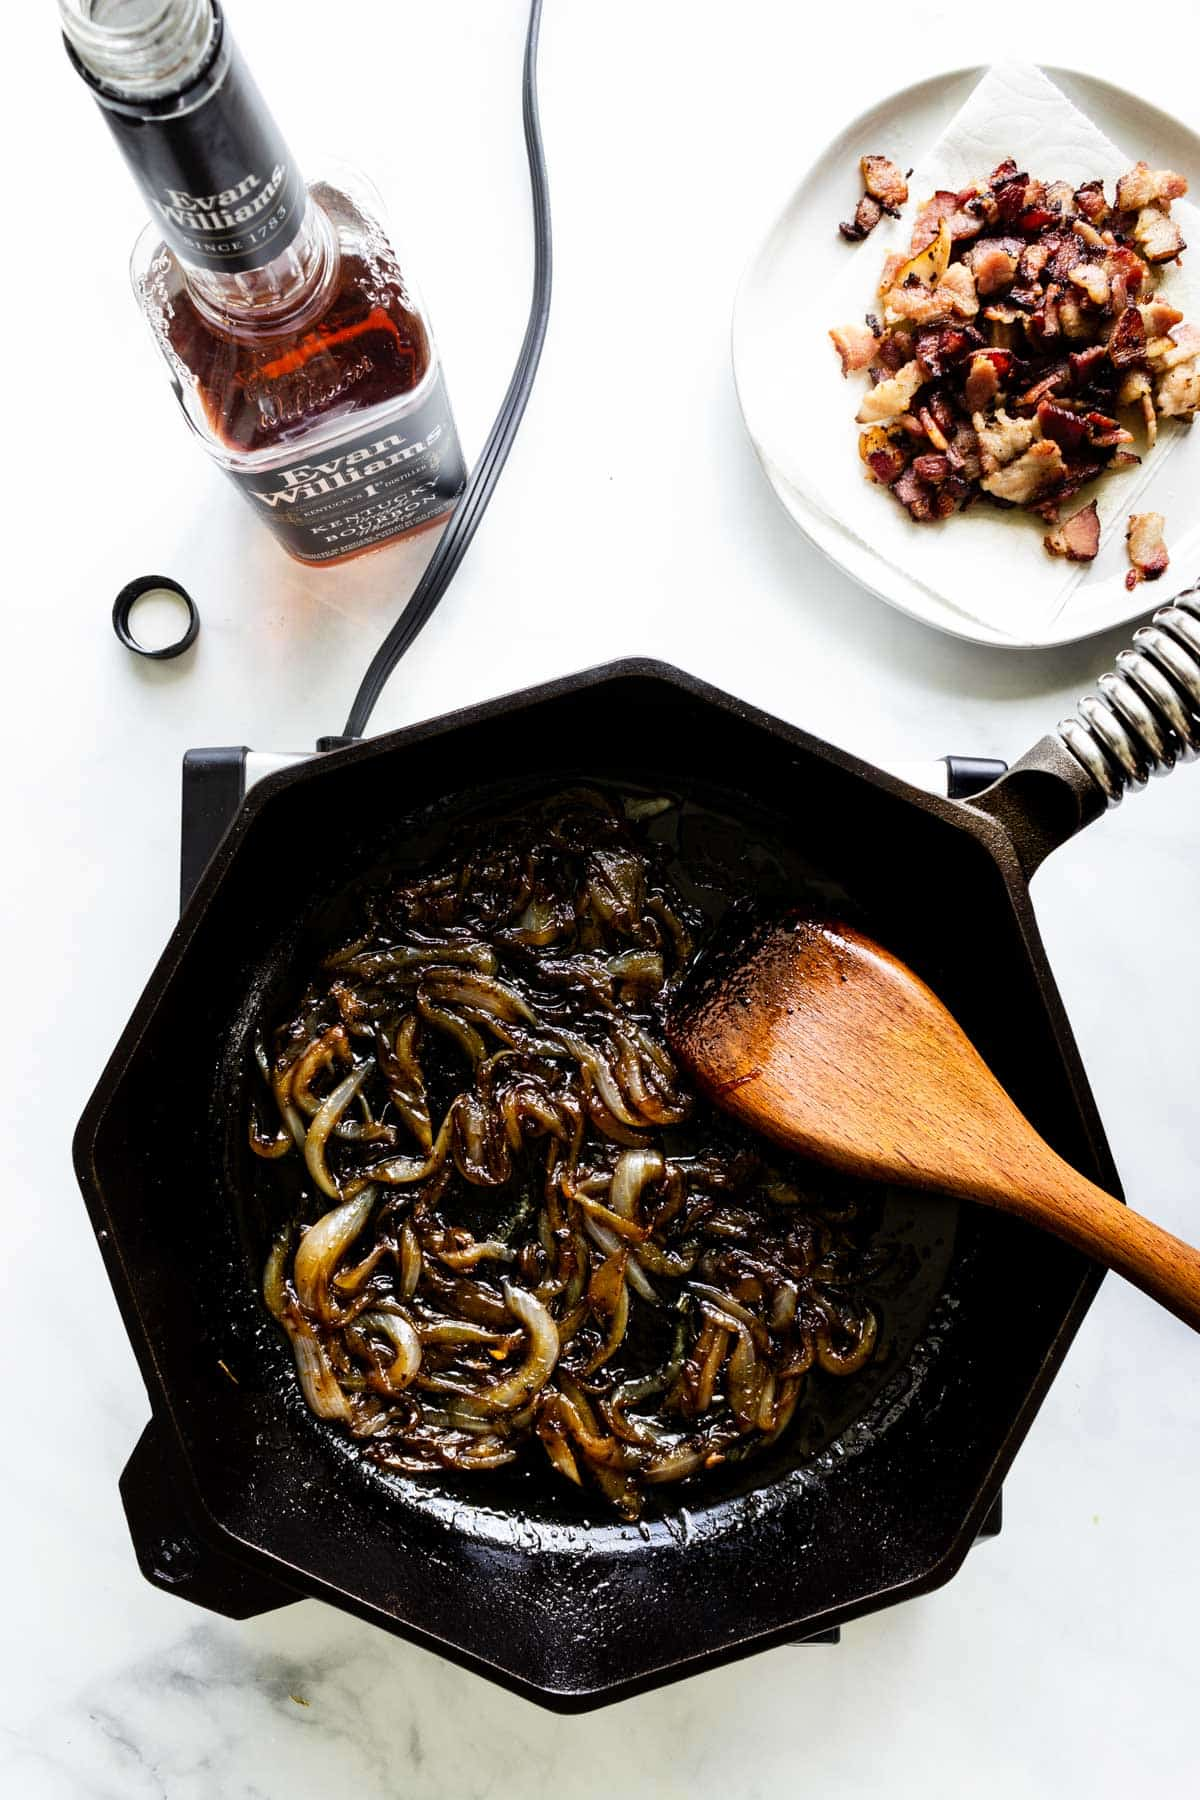 Sweet onions slowly caramelize in a cast iron skillet. A plate of cooked, coarsely chopped bacon and a bottle of bourbon sit nearby.